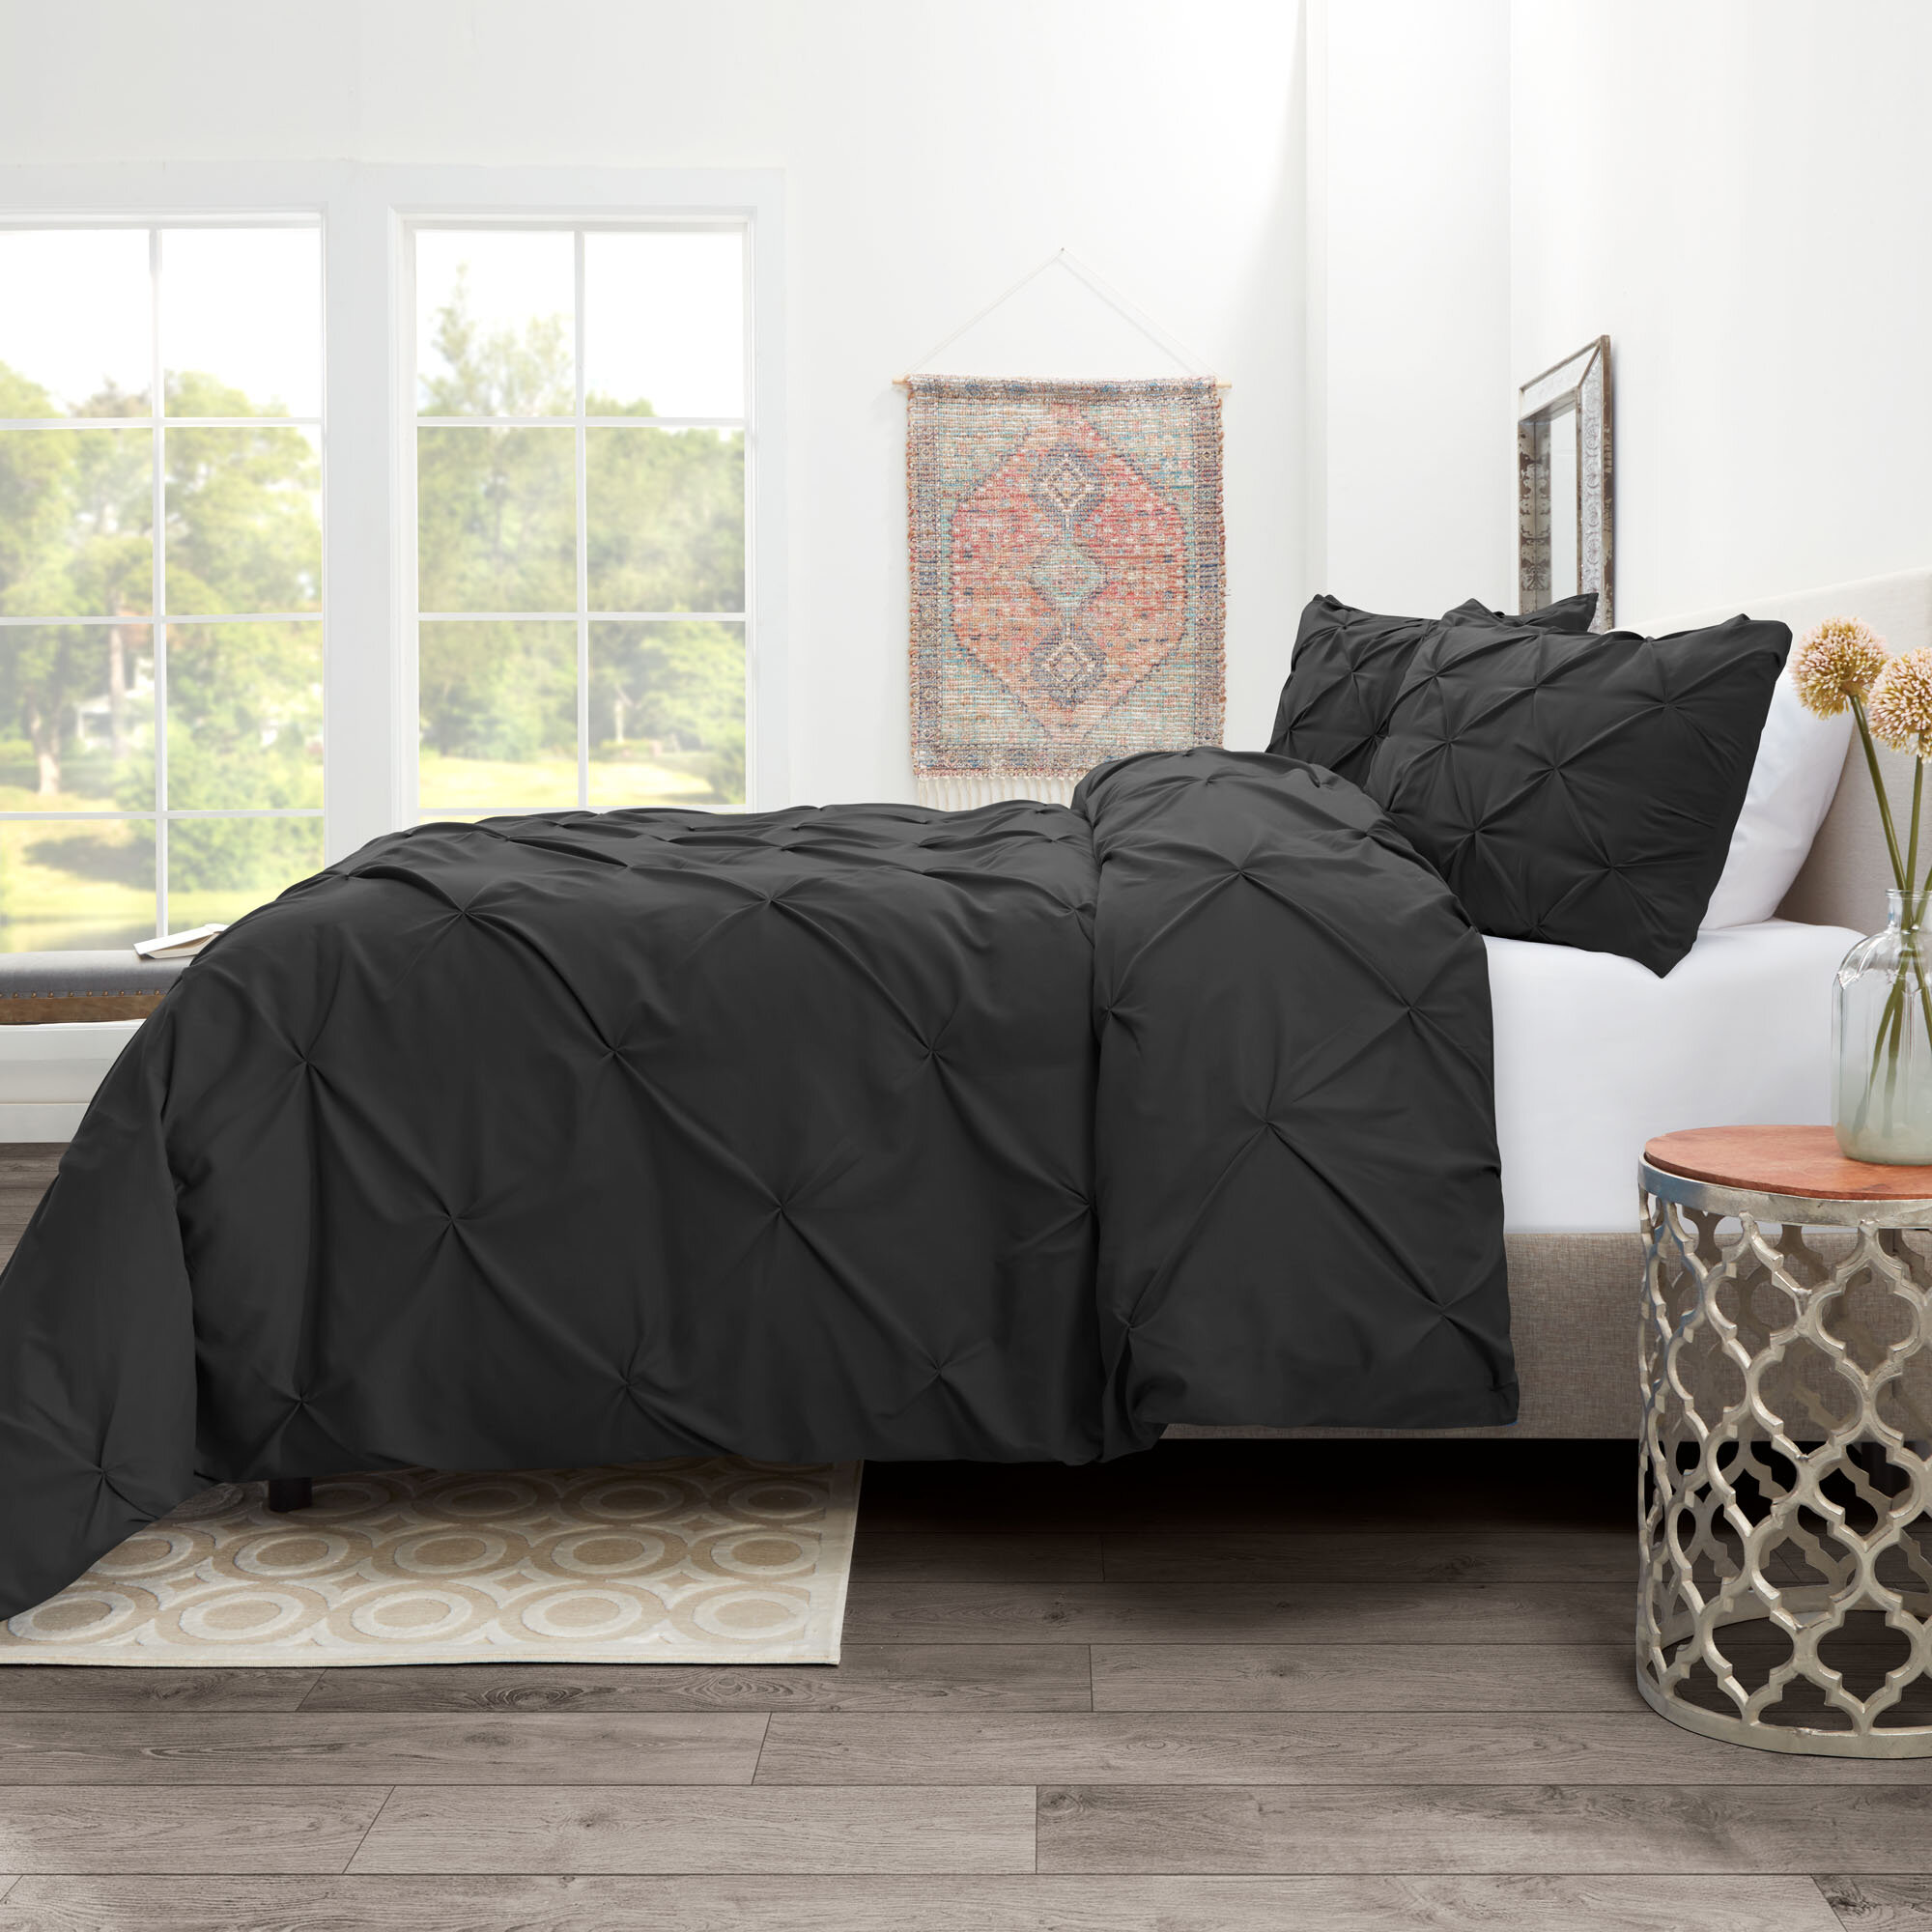 Black Bedding Sets Free Shipping Over 35 Wayfair